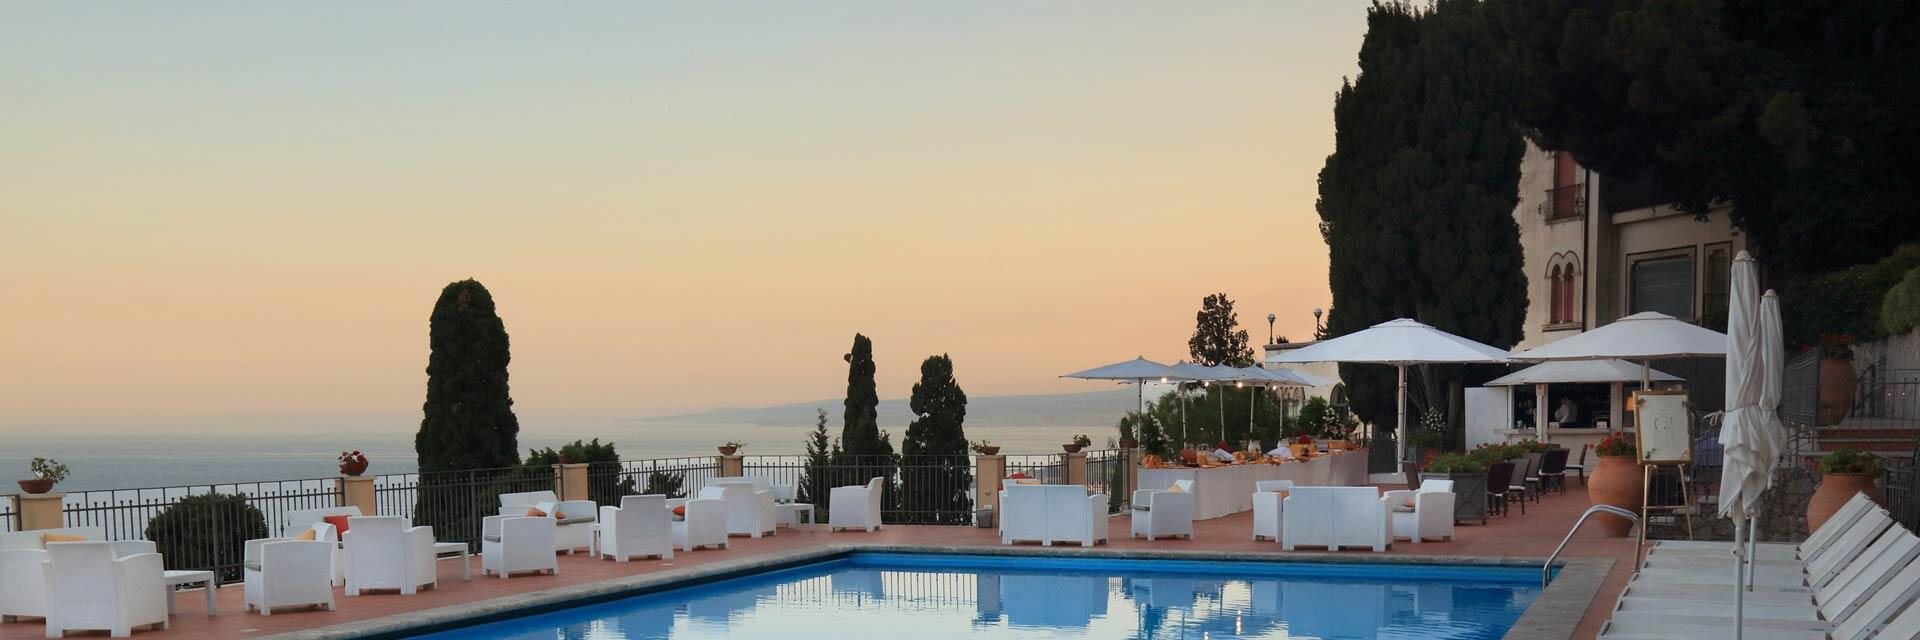 sanpietrotaormina en offer-for-october-at-5-star-hotel-in-taormina-with-sea-view-and-spa 012